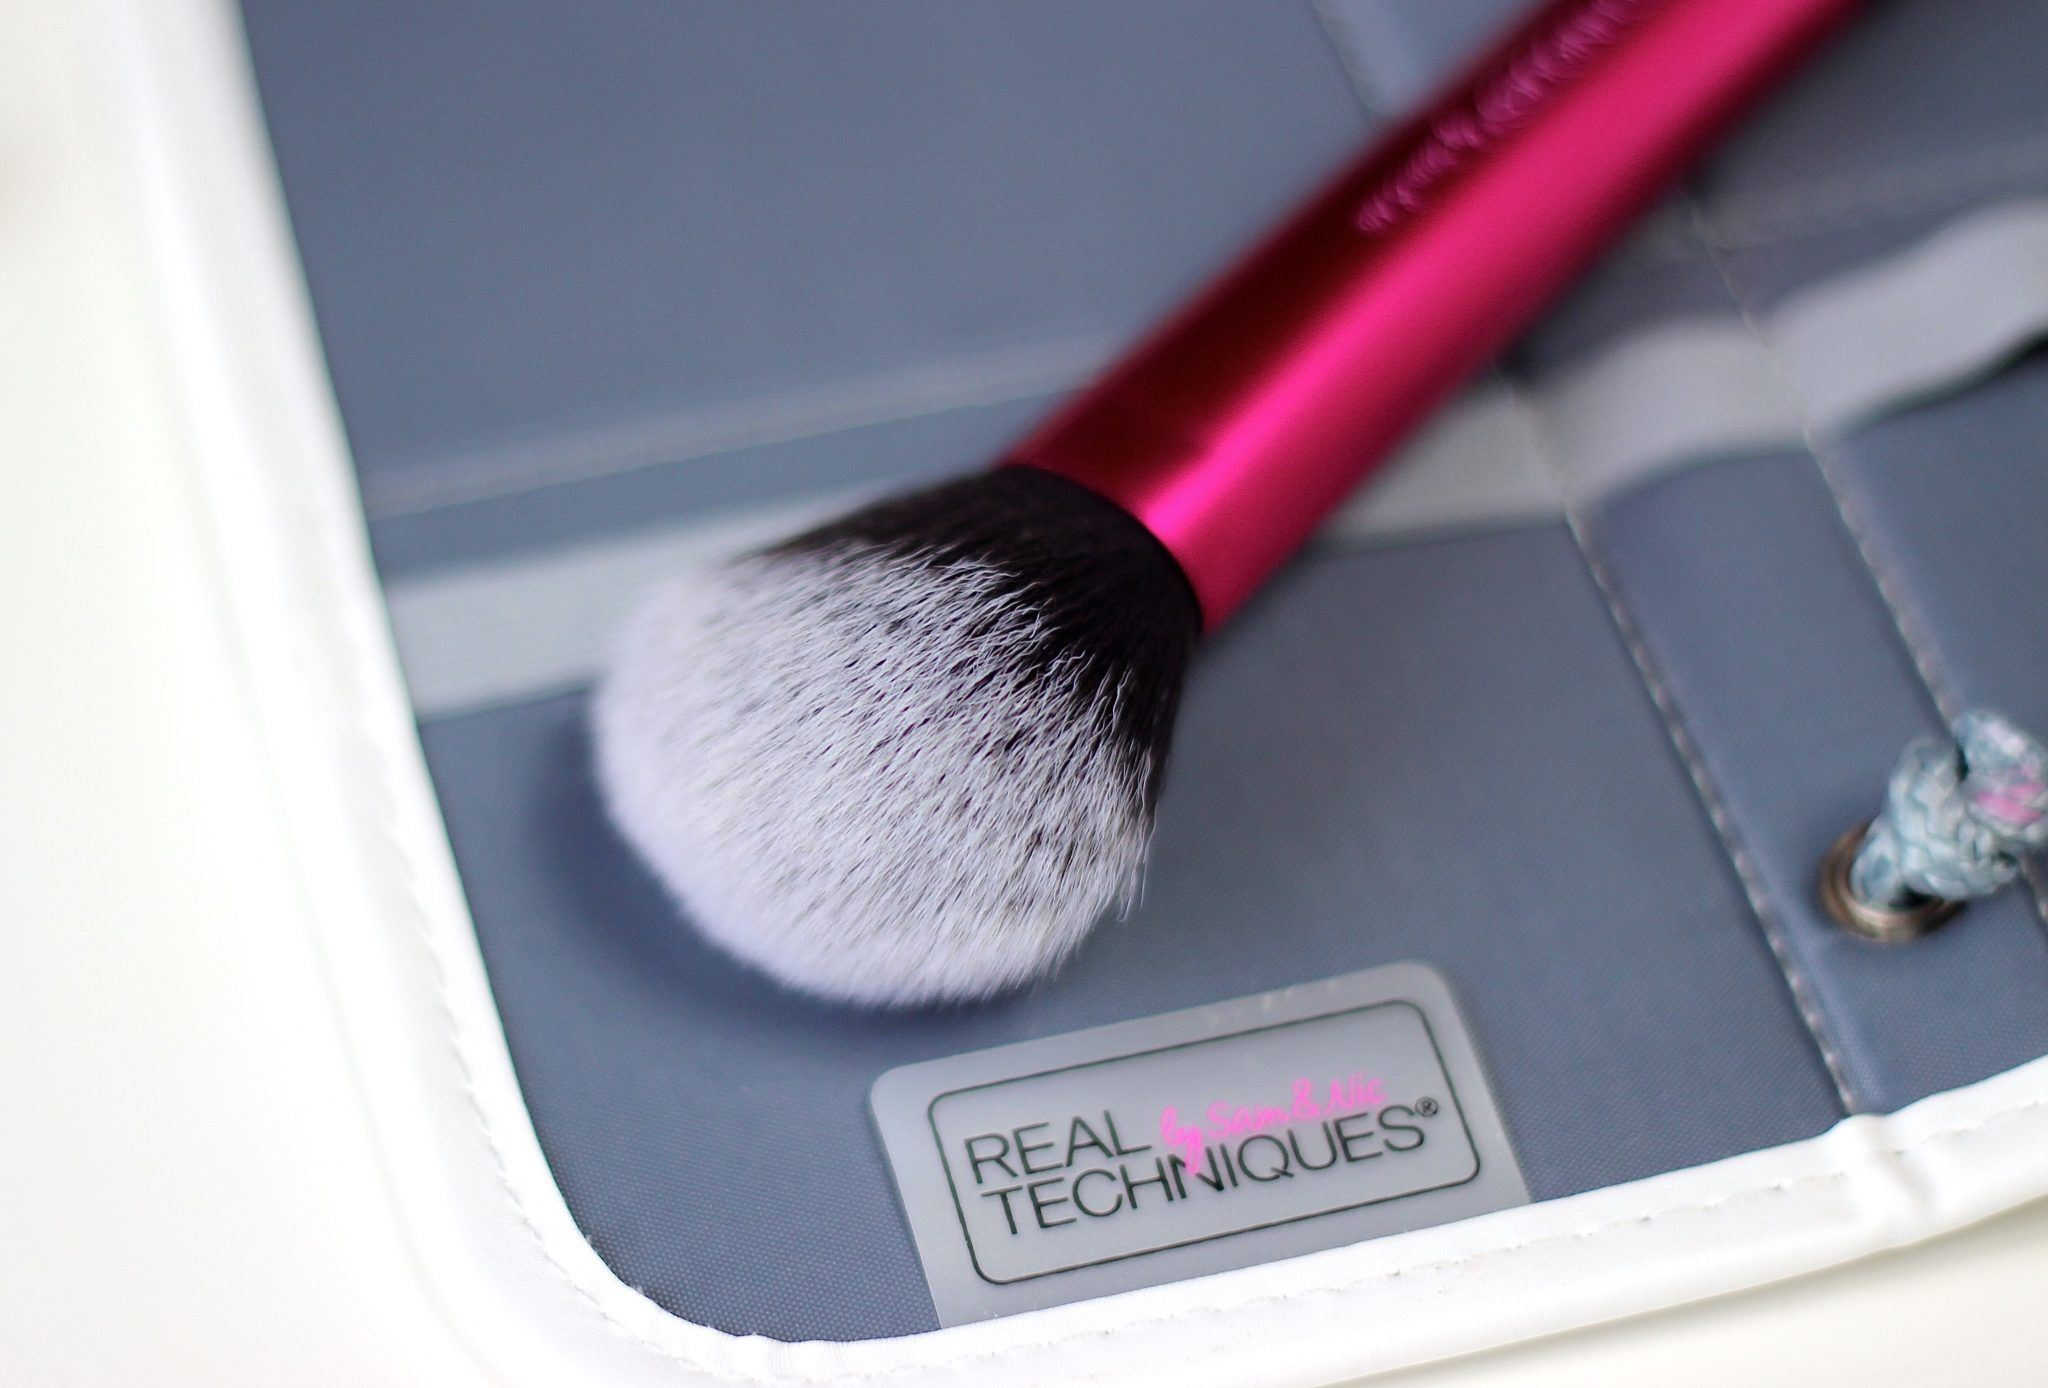 Real Techniques Multitask brush